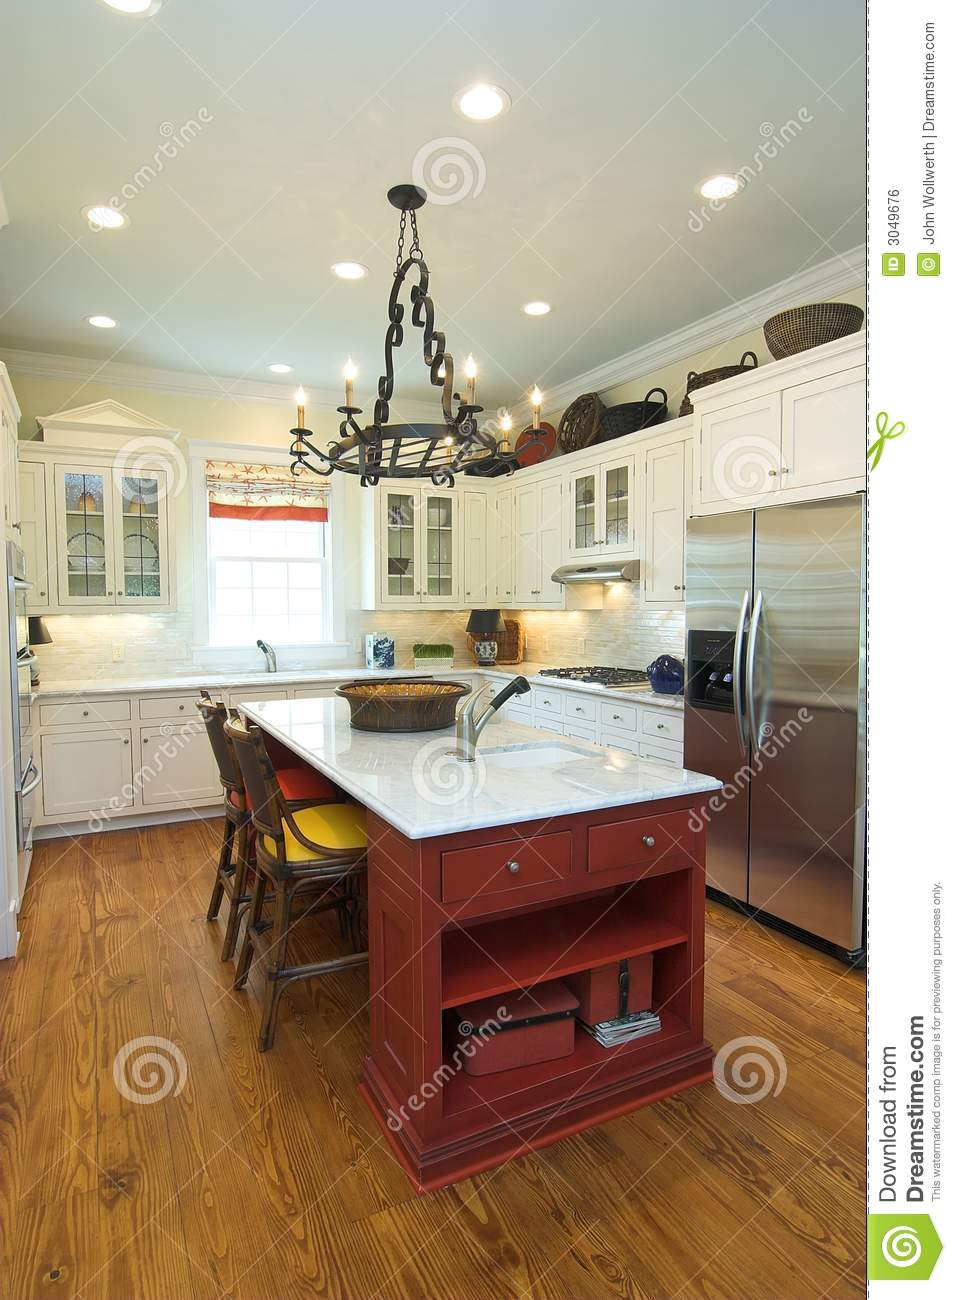 Rustic Modern Kitchen Stock Photo Image Of White Island